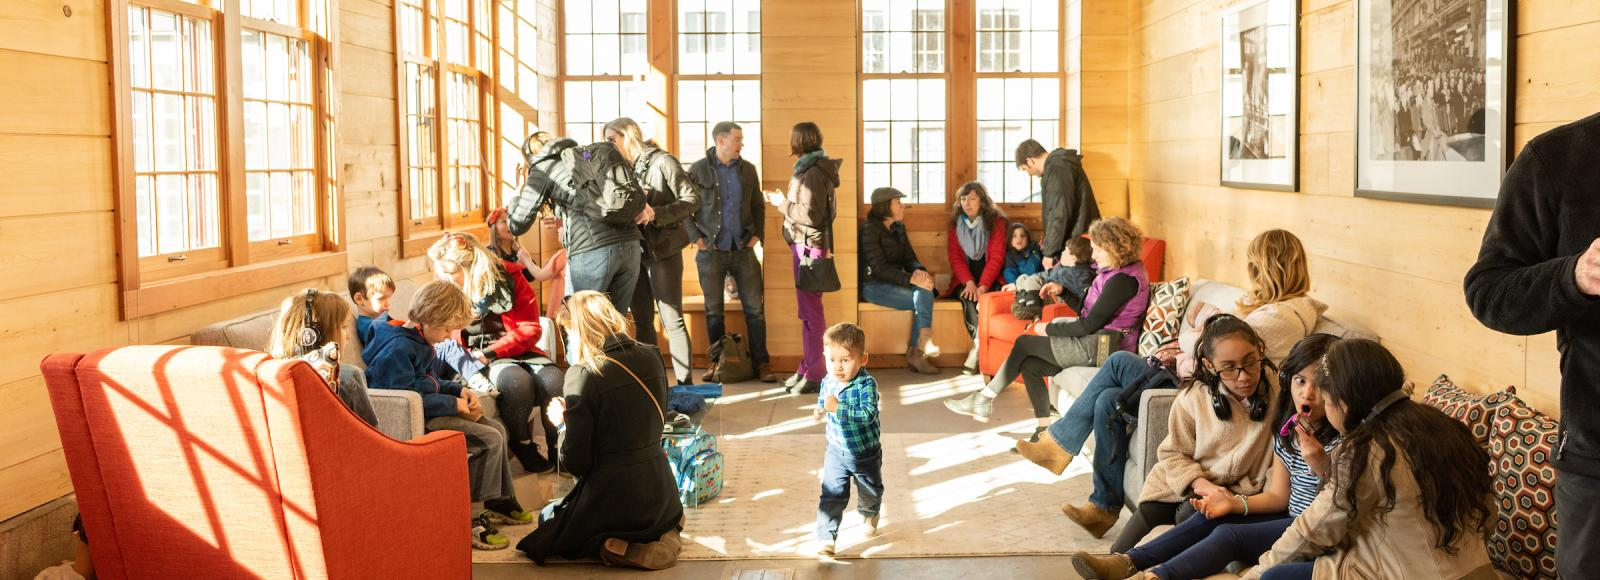 A group of parents and children enjoy a sunlit room